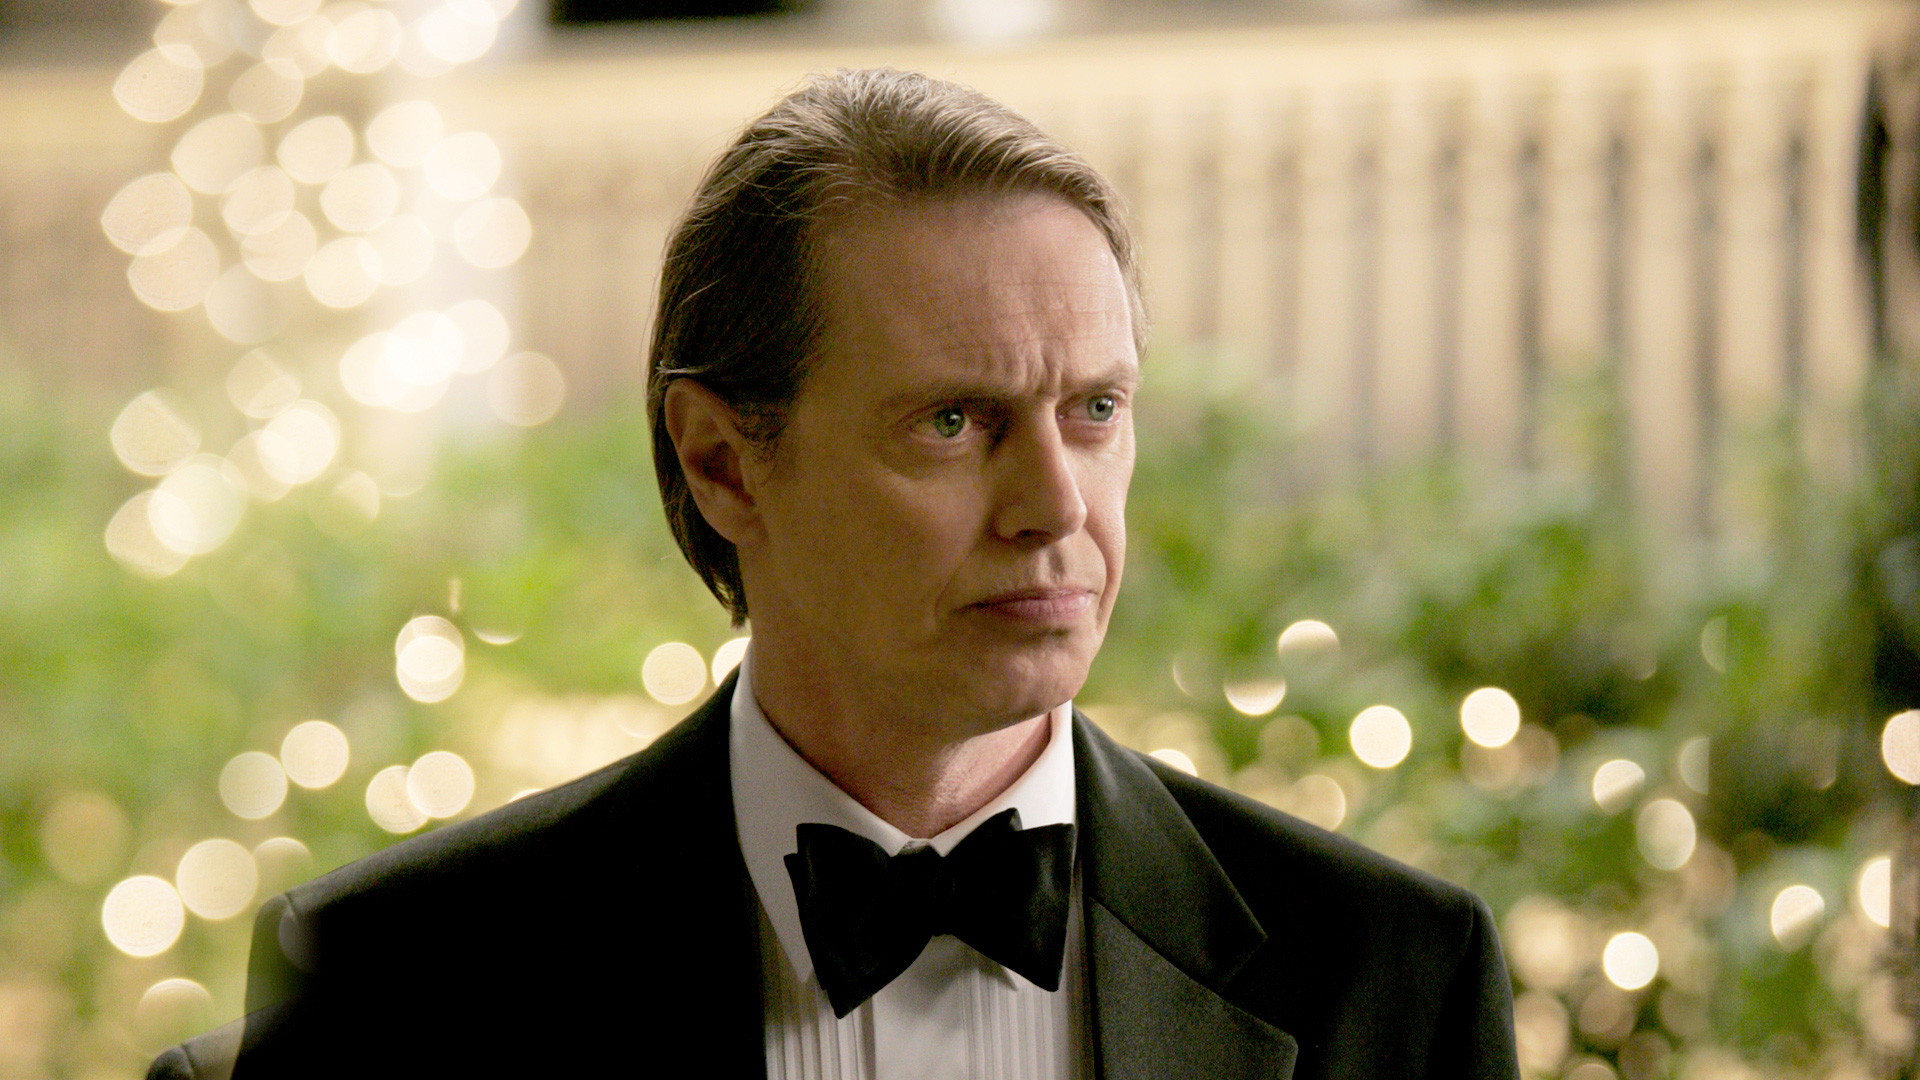 Steve Buscemi Wallpapers Widescreen Image Photos Pictures